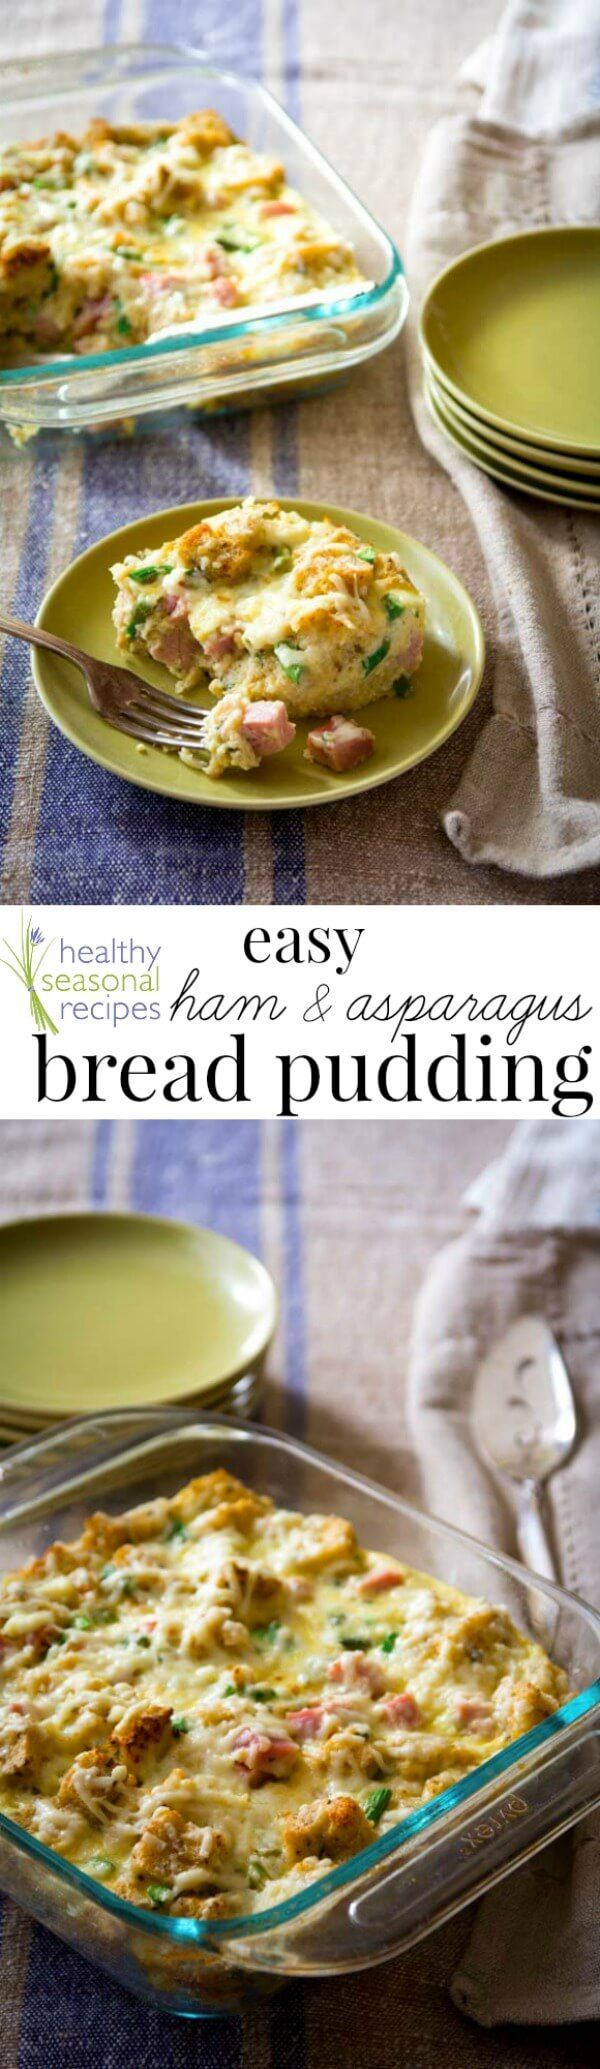 Blog post at Healthy Seasonal Recipes : Easy savory bread pudding with fresh asparagus, smoked ham and cheddar for an easy dinner or Easter Brunch.        I wanted to share this re[..]